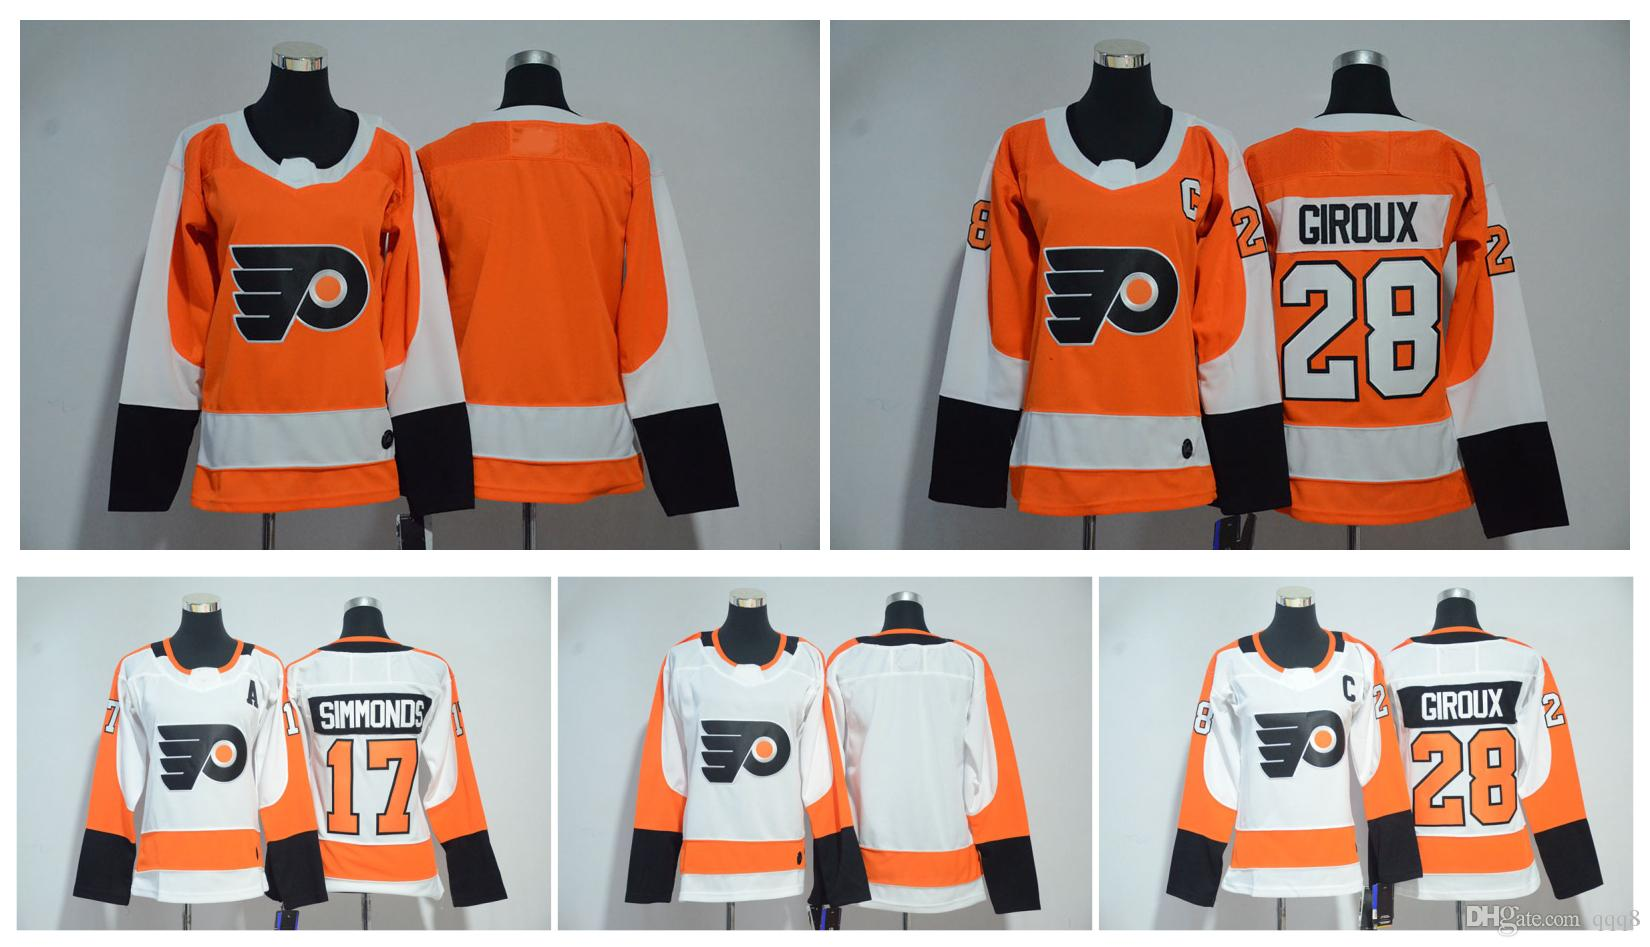 e25aa35af 2019 2018 AD Women Philadelphia Flyers Jersey 17 Wayne Simmonds 28 Claude  Giroux Stitched Ladies Hockey Jerseys From Qqq8, $25.08 | DHgate.Com